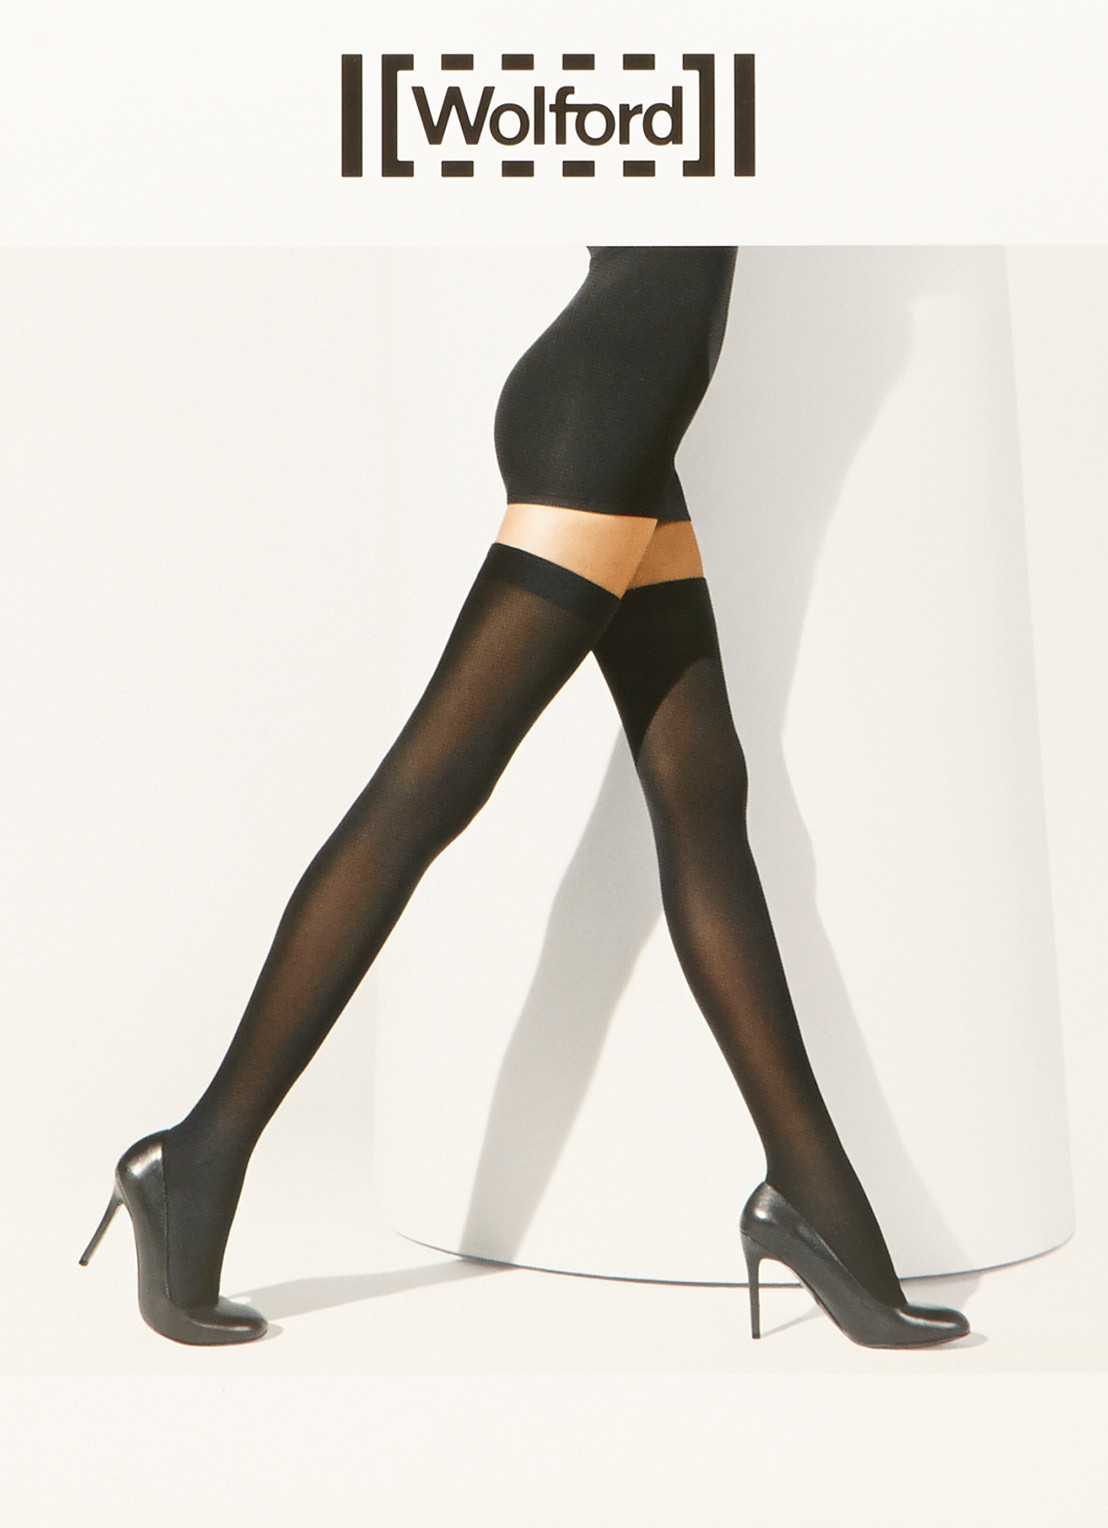 Wolford Fatal Seamless stay-ups in 80 denier